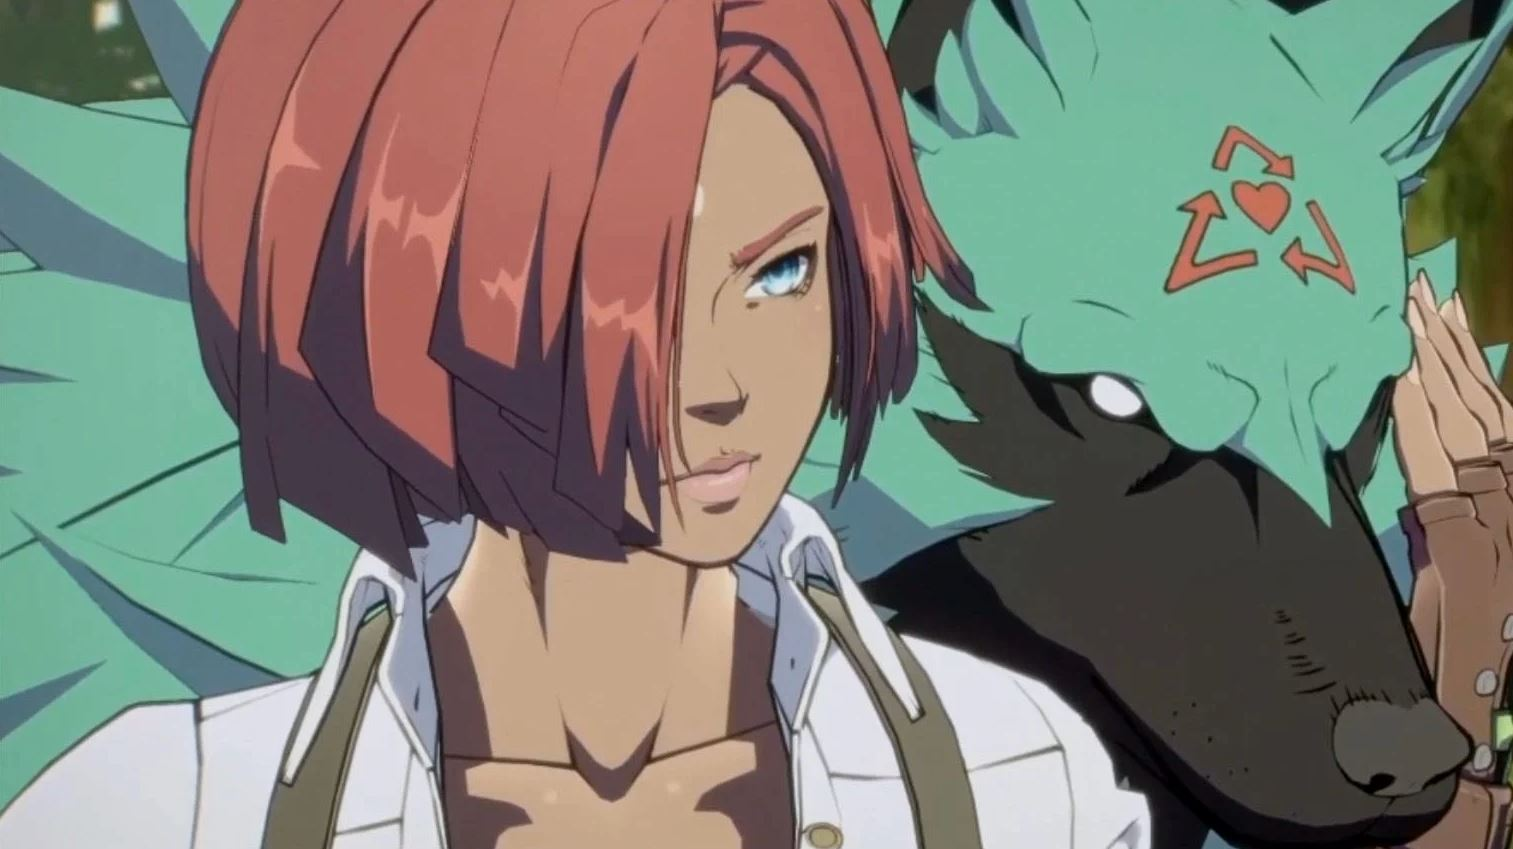 guilty-gear-strive-delayed-to-june-11-on-ps5-and-ps4-to-implement-feedback-from-recent-beta